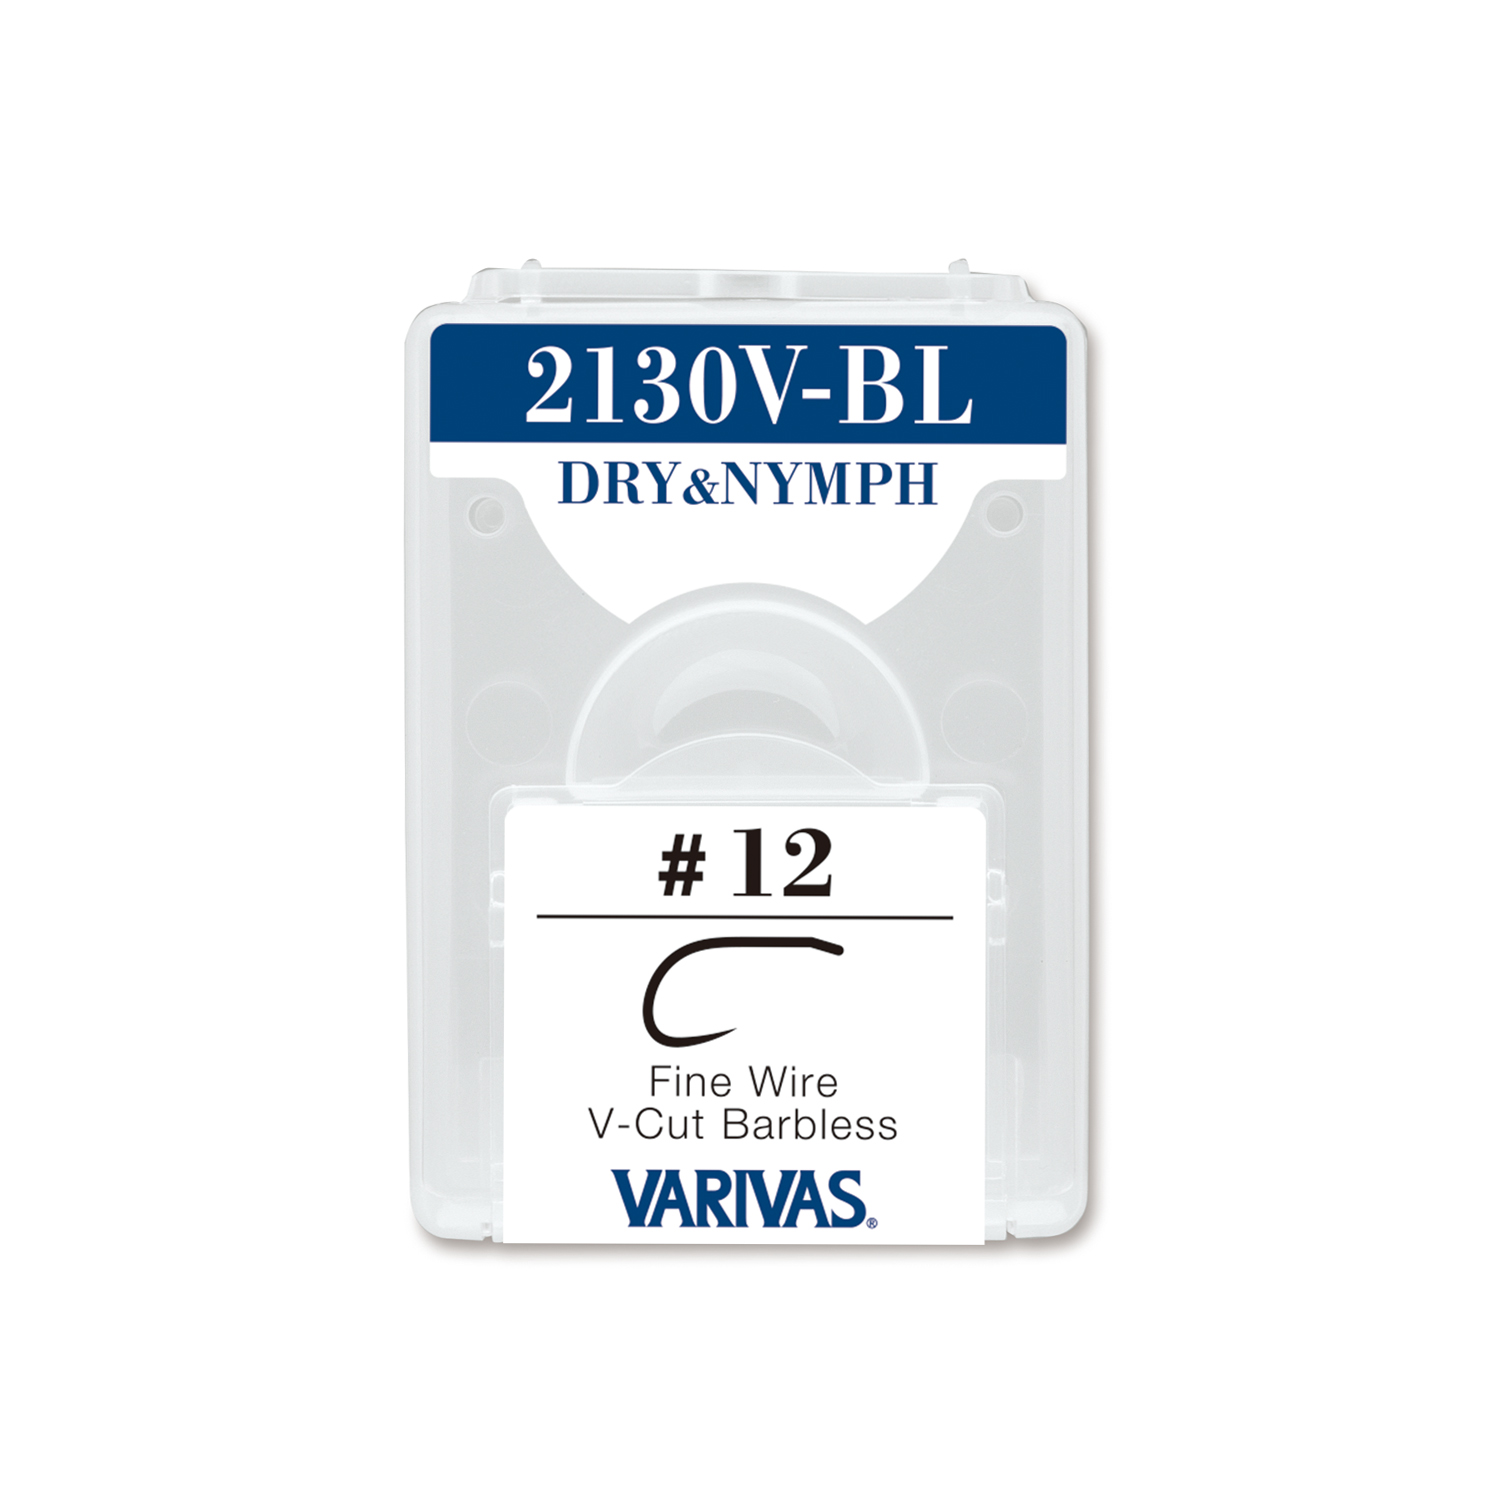 2130V-BL DRY&NYMPHFine Wire V-Cut Barbless